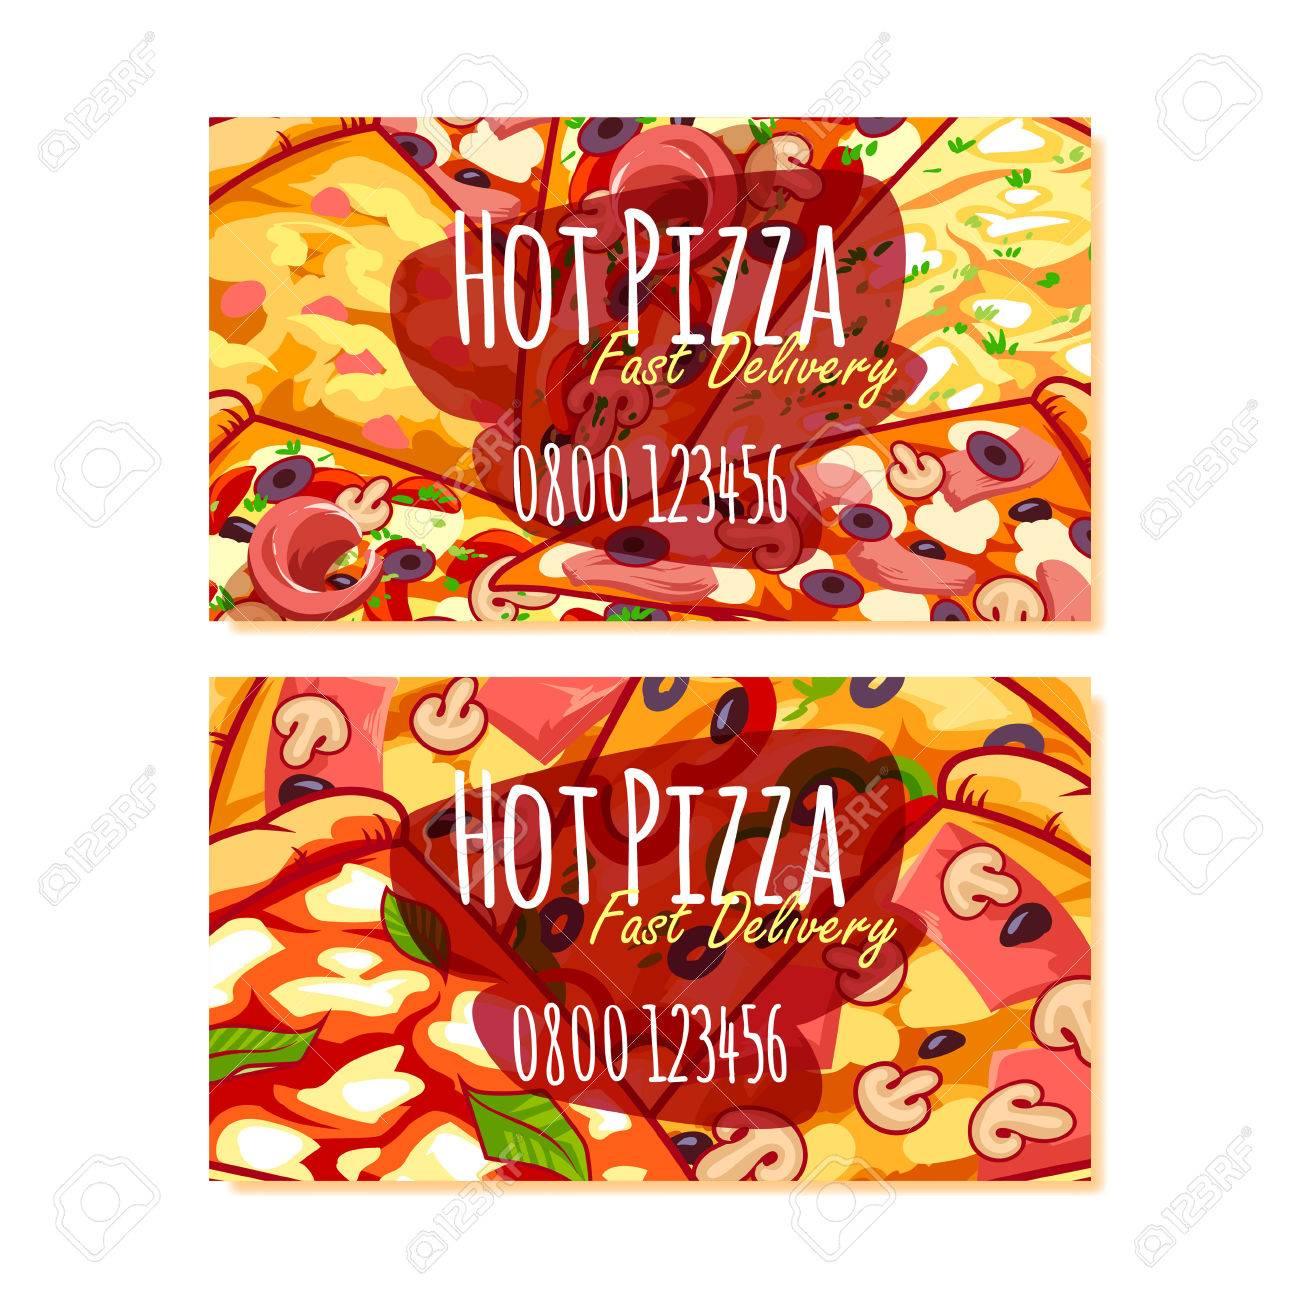 Two Business Card Template For Pizza Delivery Or Pizzerias. Vector ...